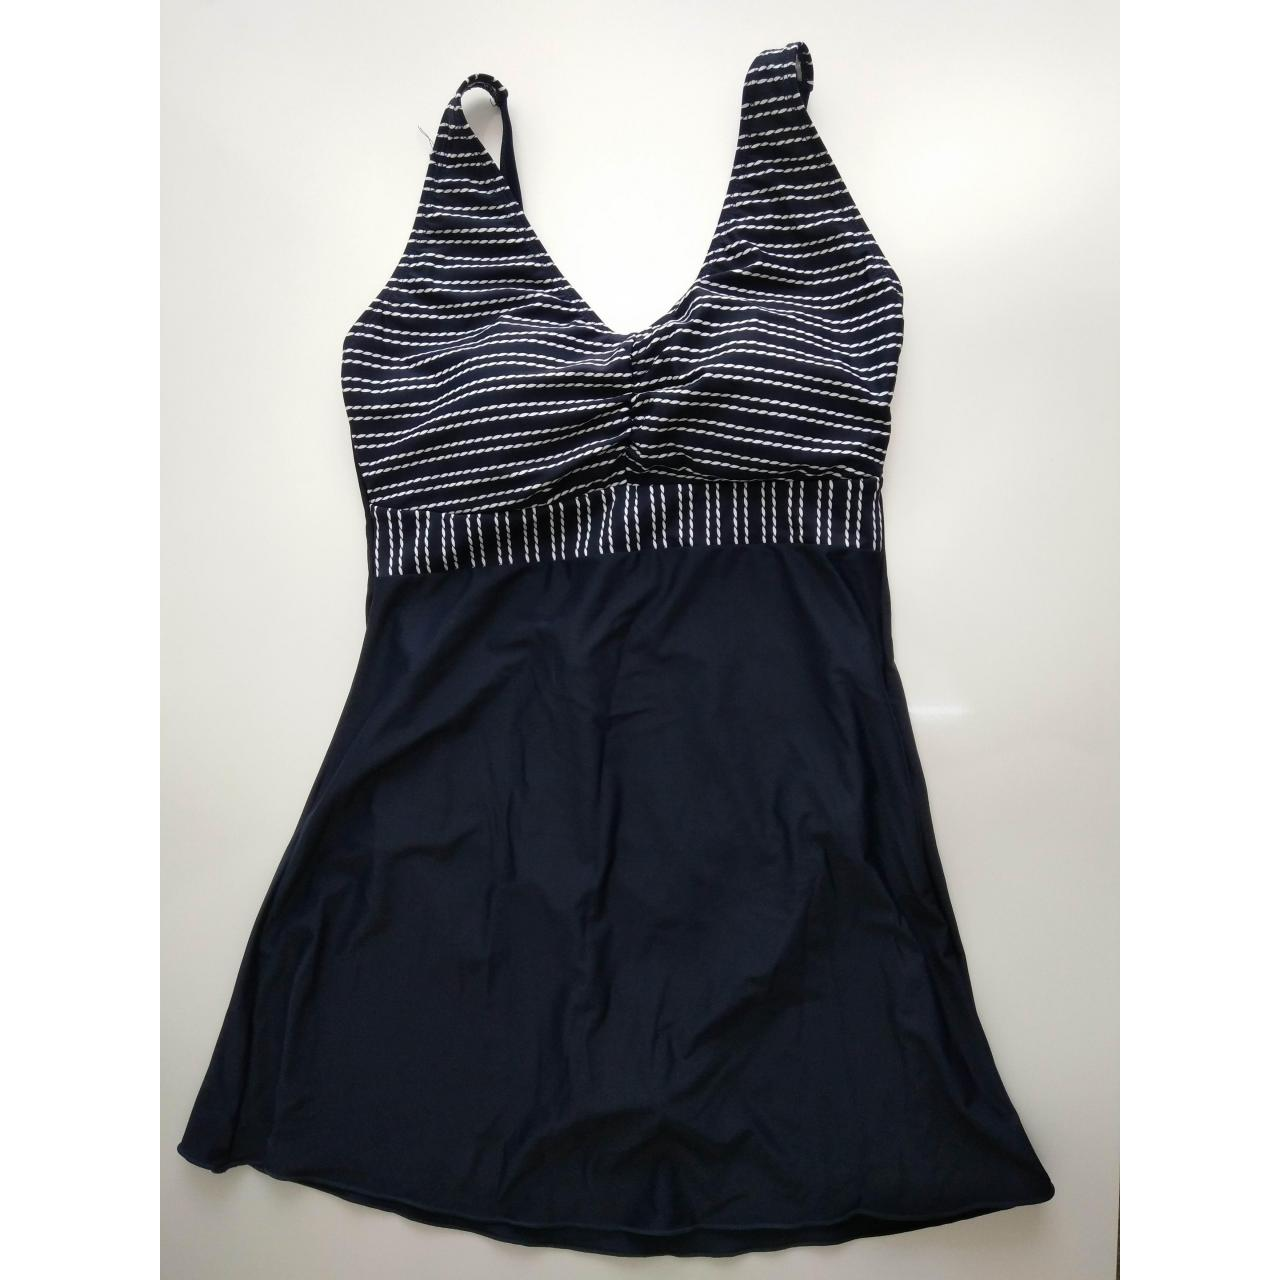 Quality LADIES SWIMSUITS ladies white and navy stripe top and solid navy bottom skirt one piece for sale